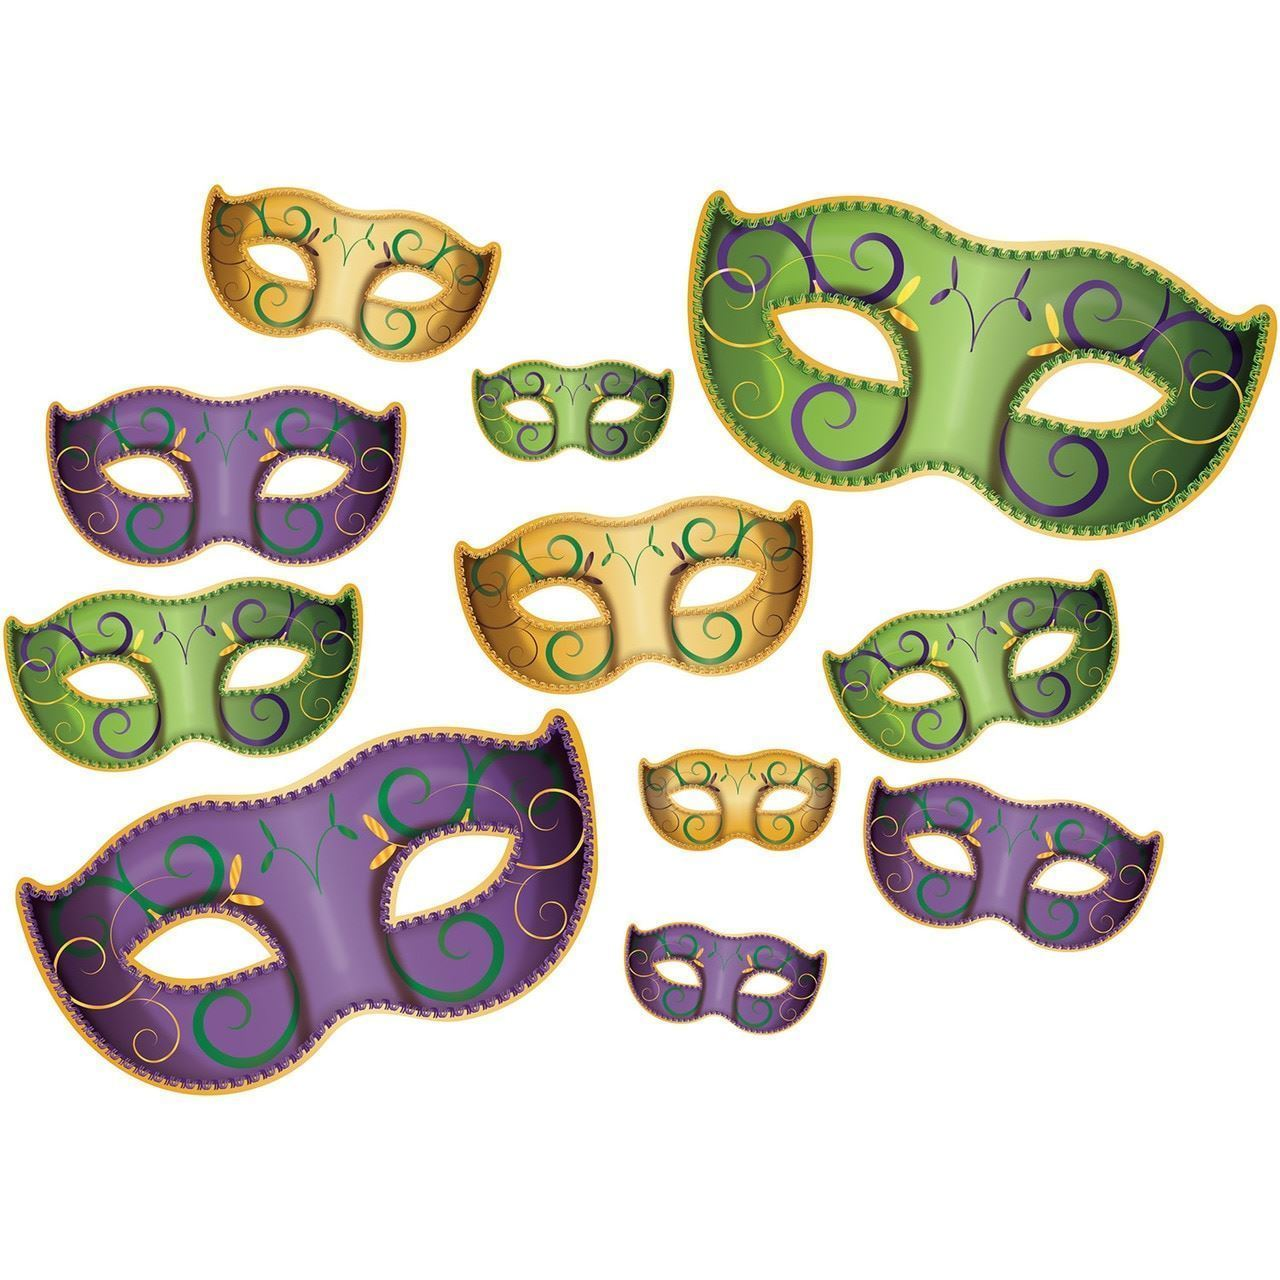 Mardi Gras Mask Cut Out Decorations